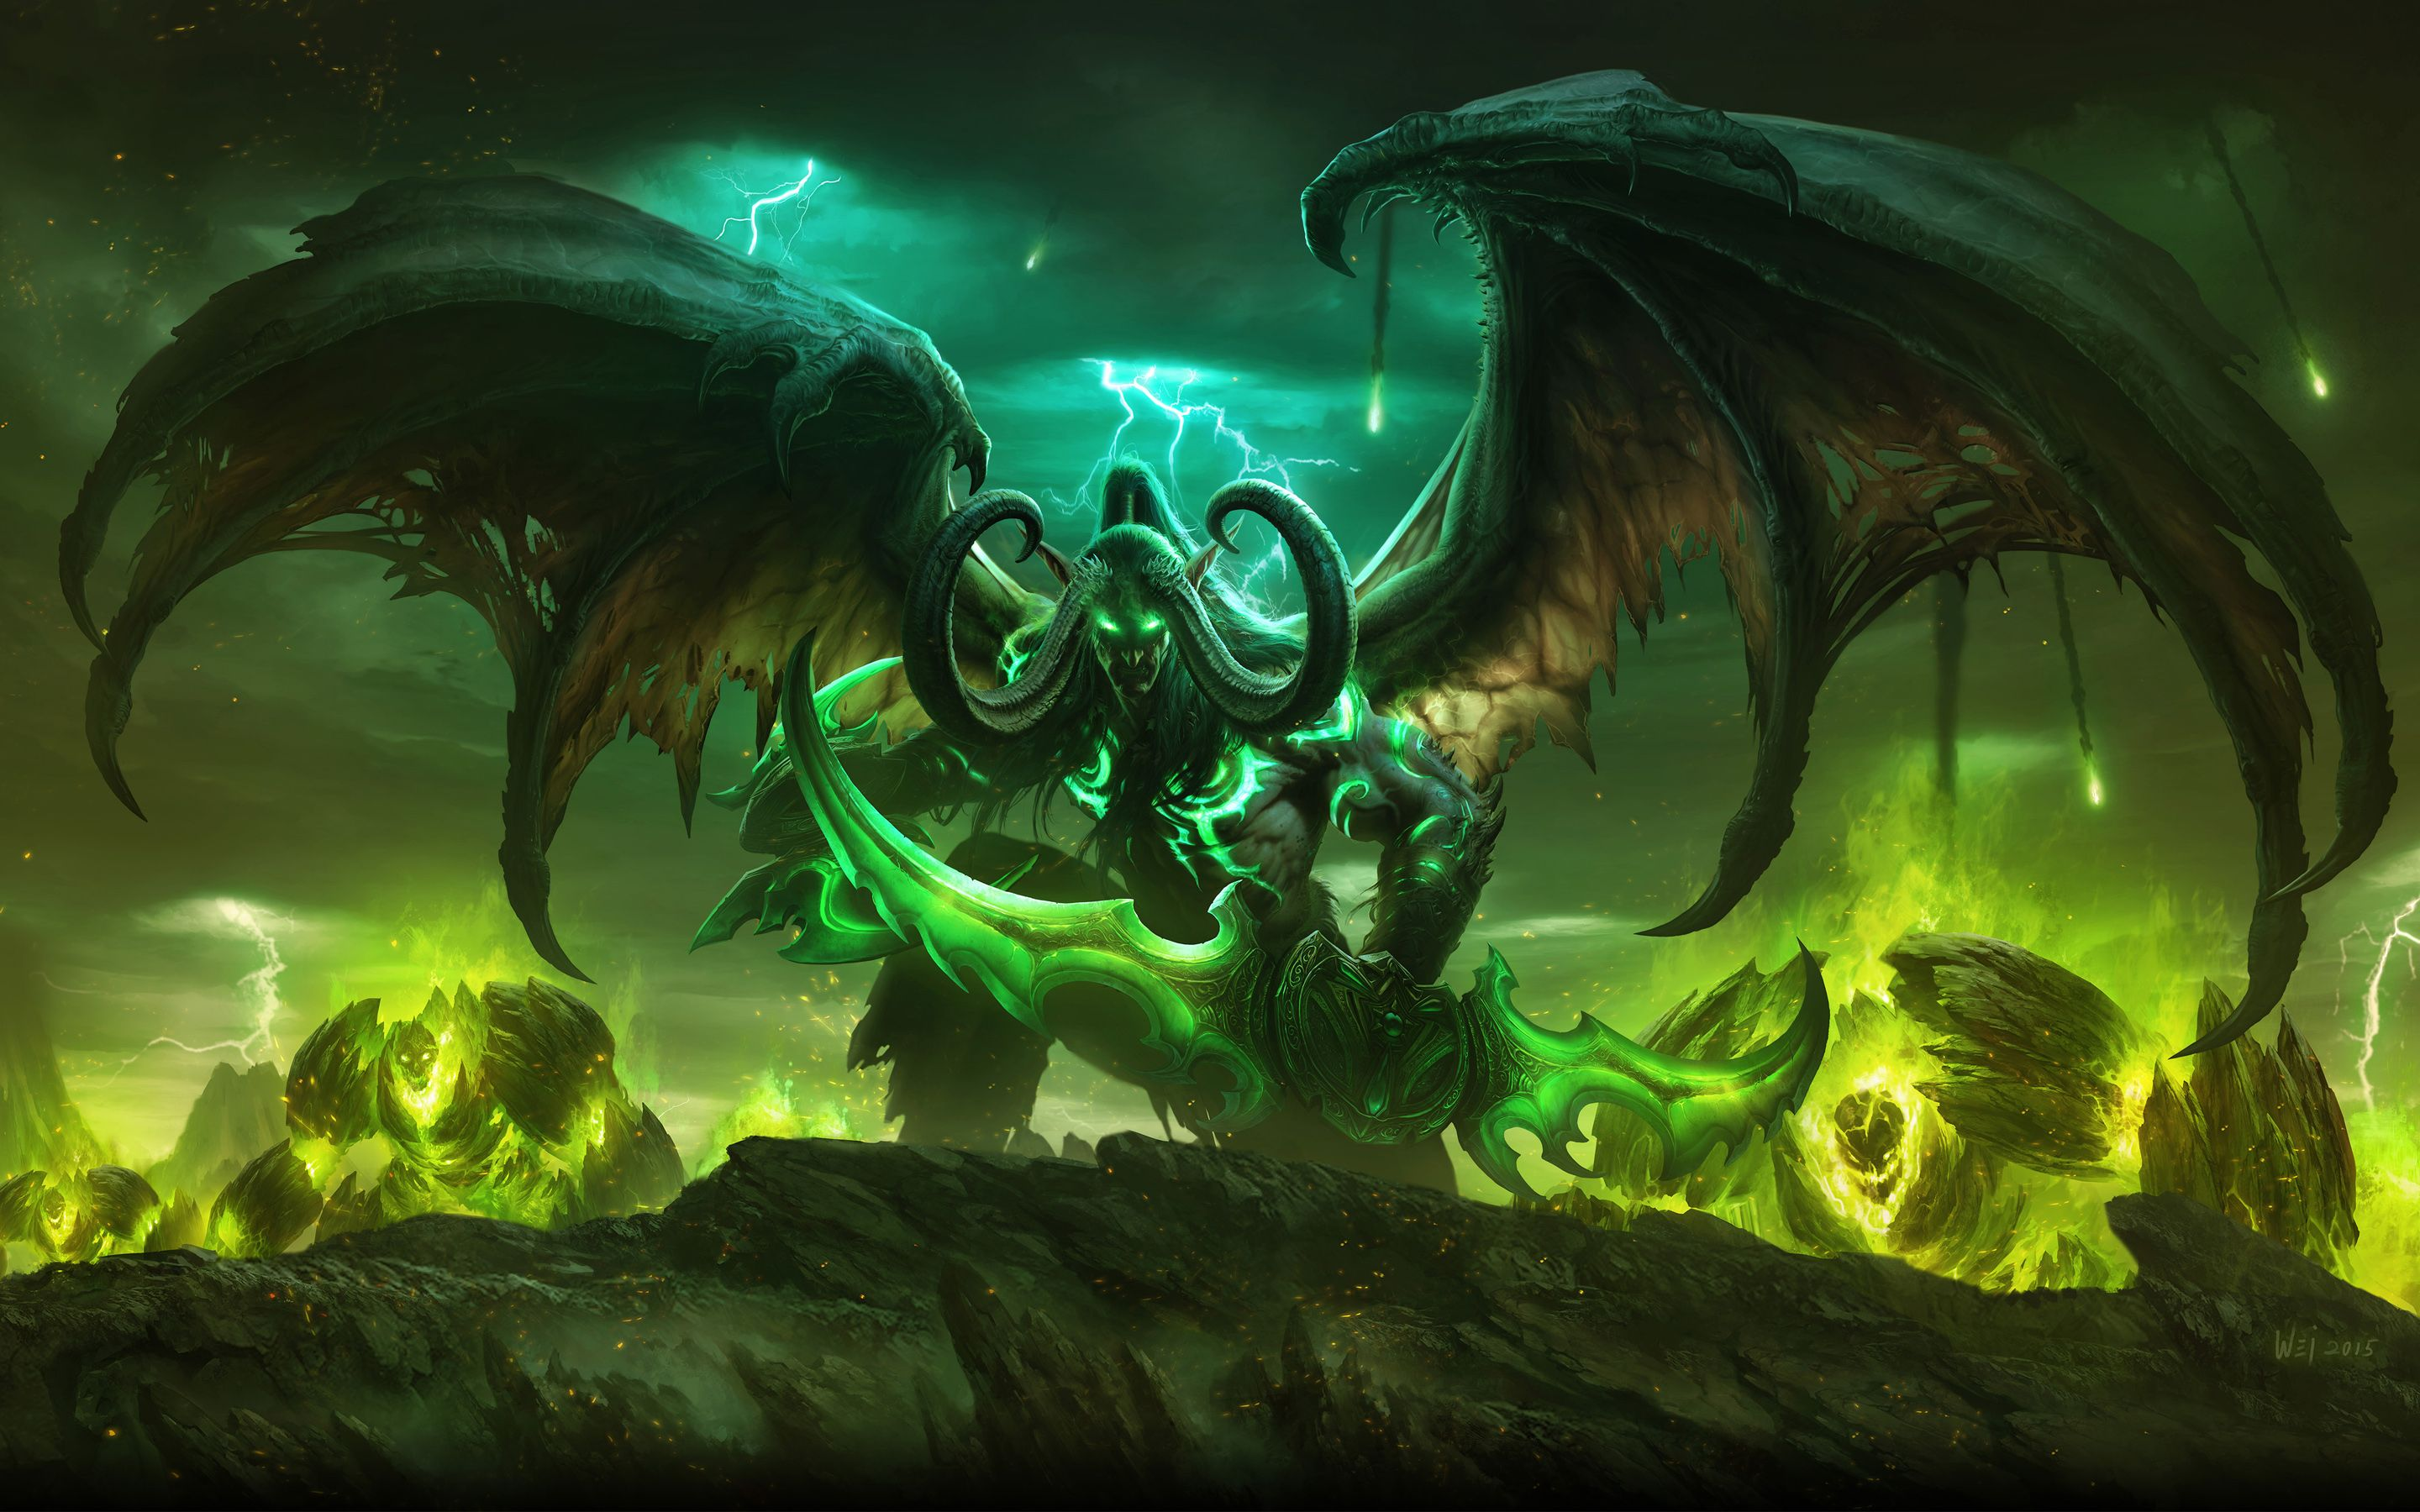 World Of Warcraft HD Wallpapers Backgrounds Wallpaper